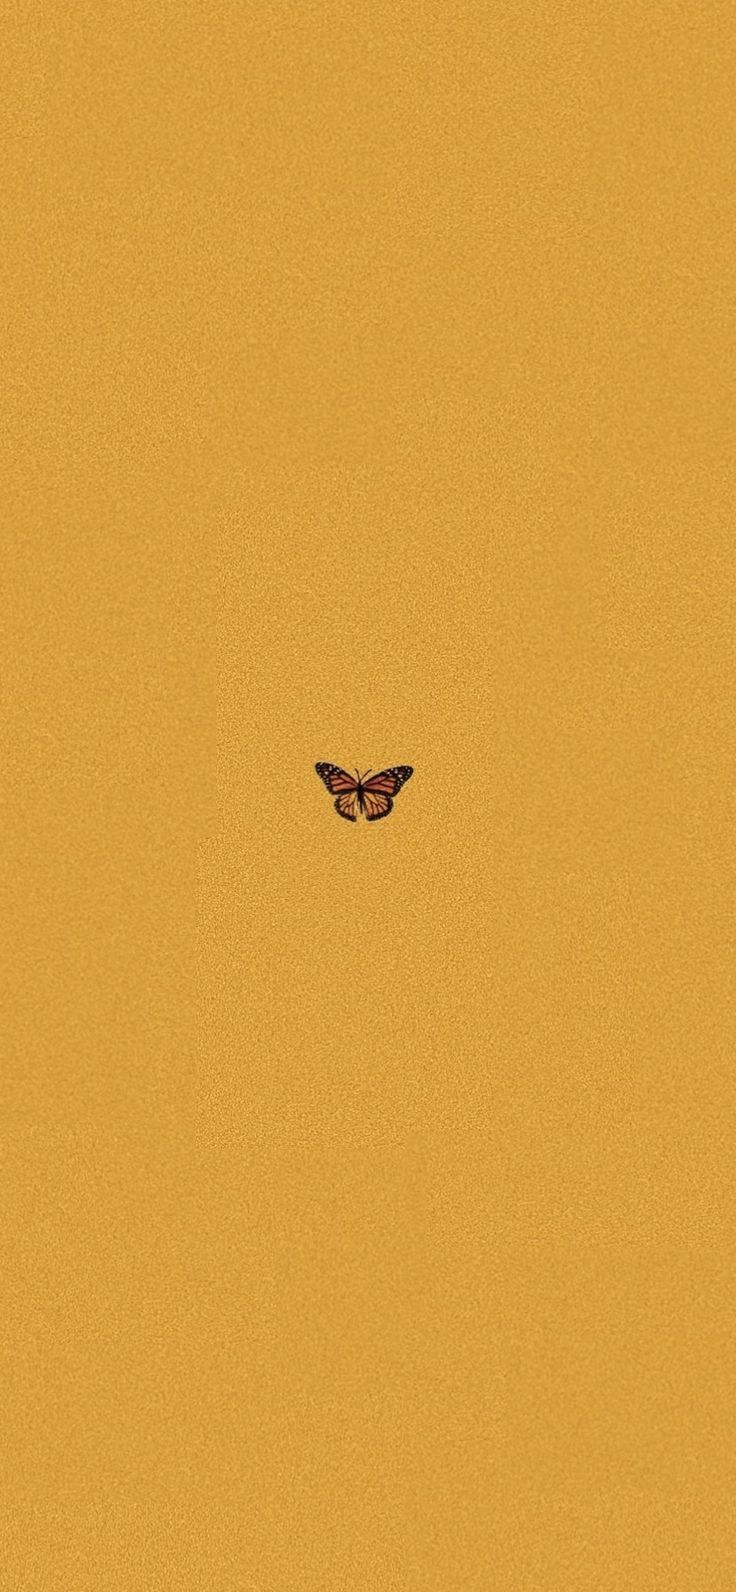 Wallpaper, yellow aesthetic butterfly IPhone X #fallwallpaperiphone